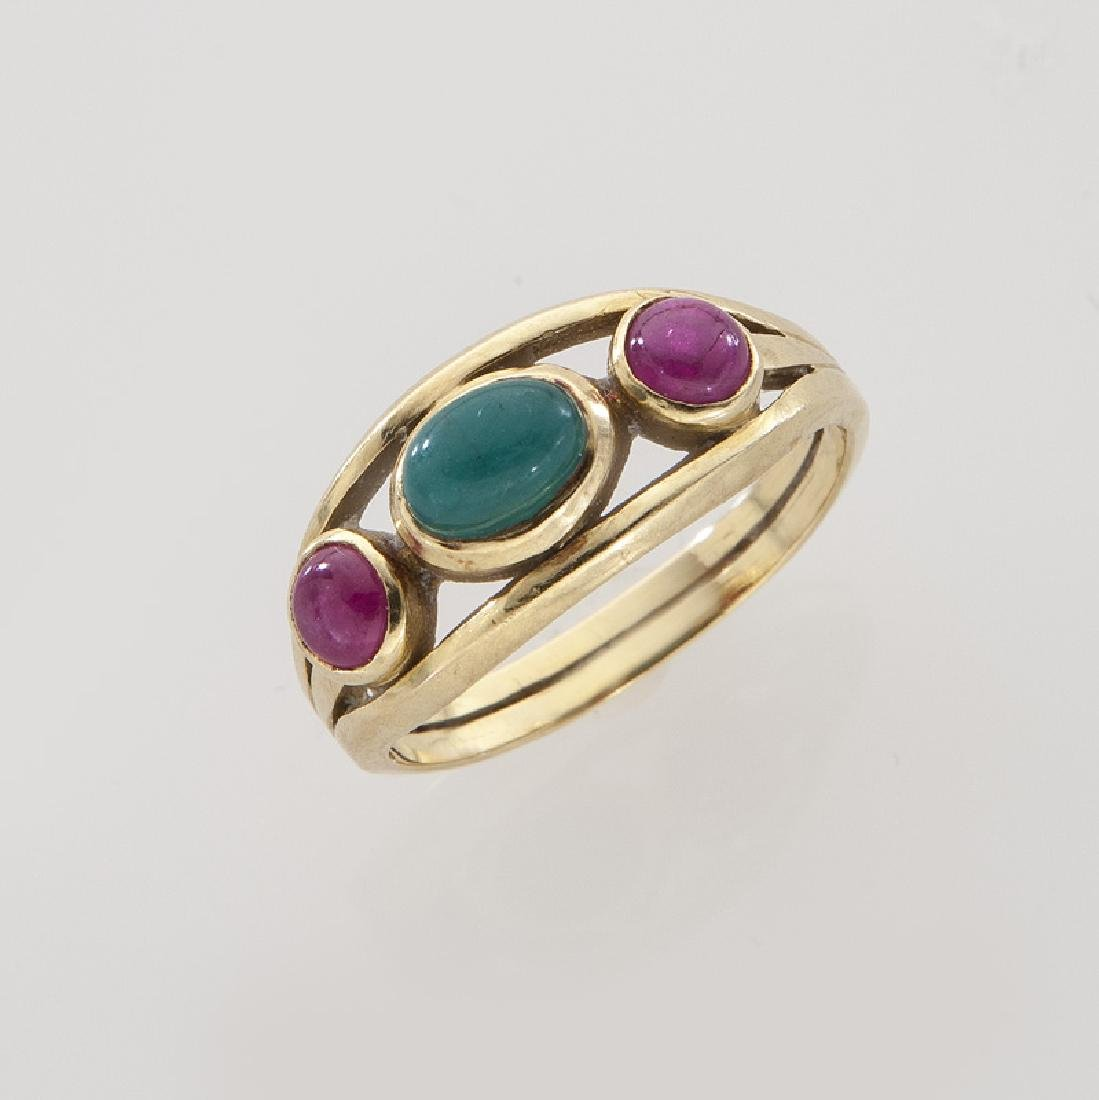 Lalaounis 18K, cabochon cut emerald and ruby ring.